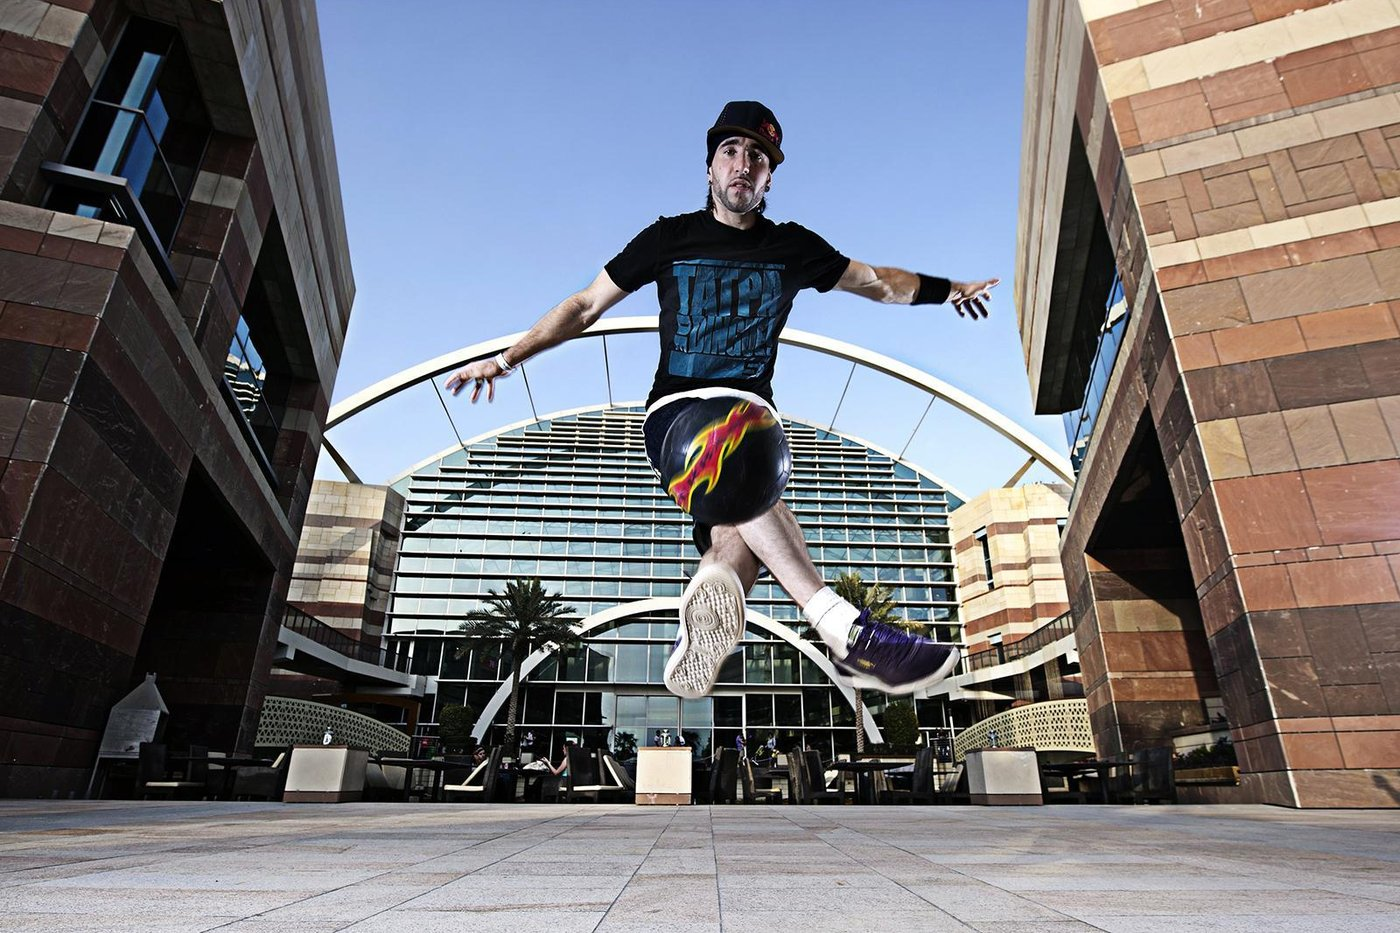 Sean Garnier performs during Red Bull Street Style in Dubai Festival City, Dubai, United Arab Emirates on June 29th, 2012 // Naim Chidiac/Red Bull Content Pool